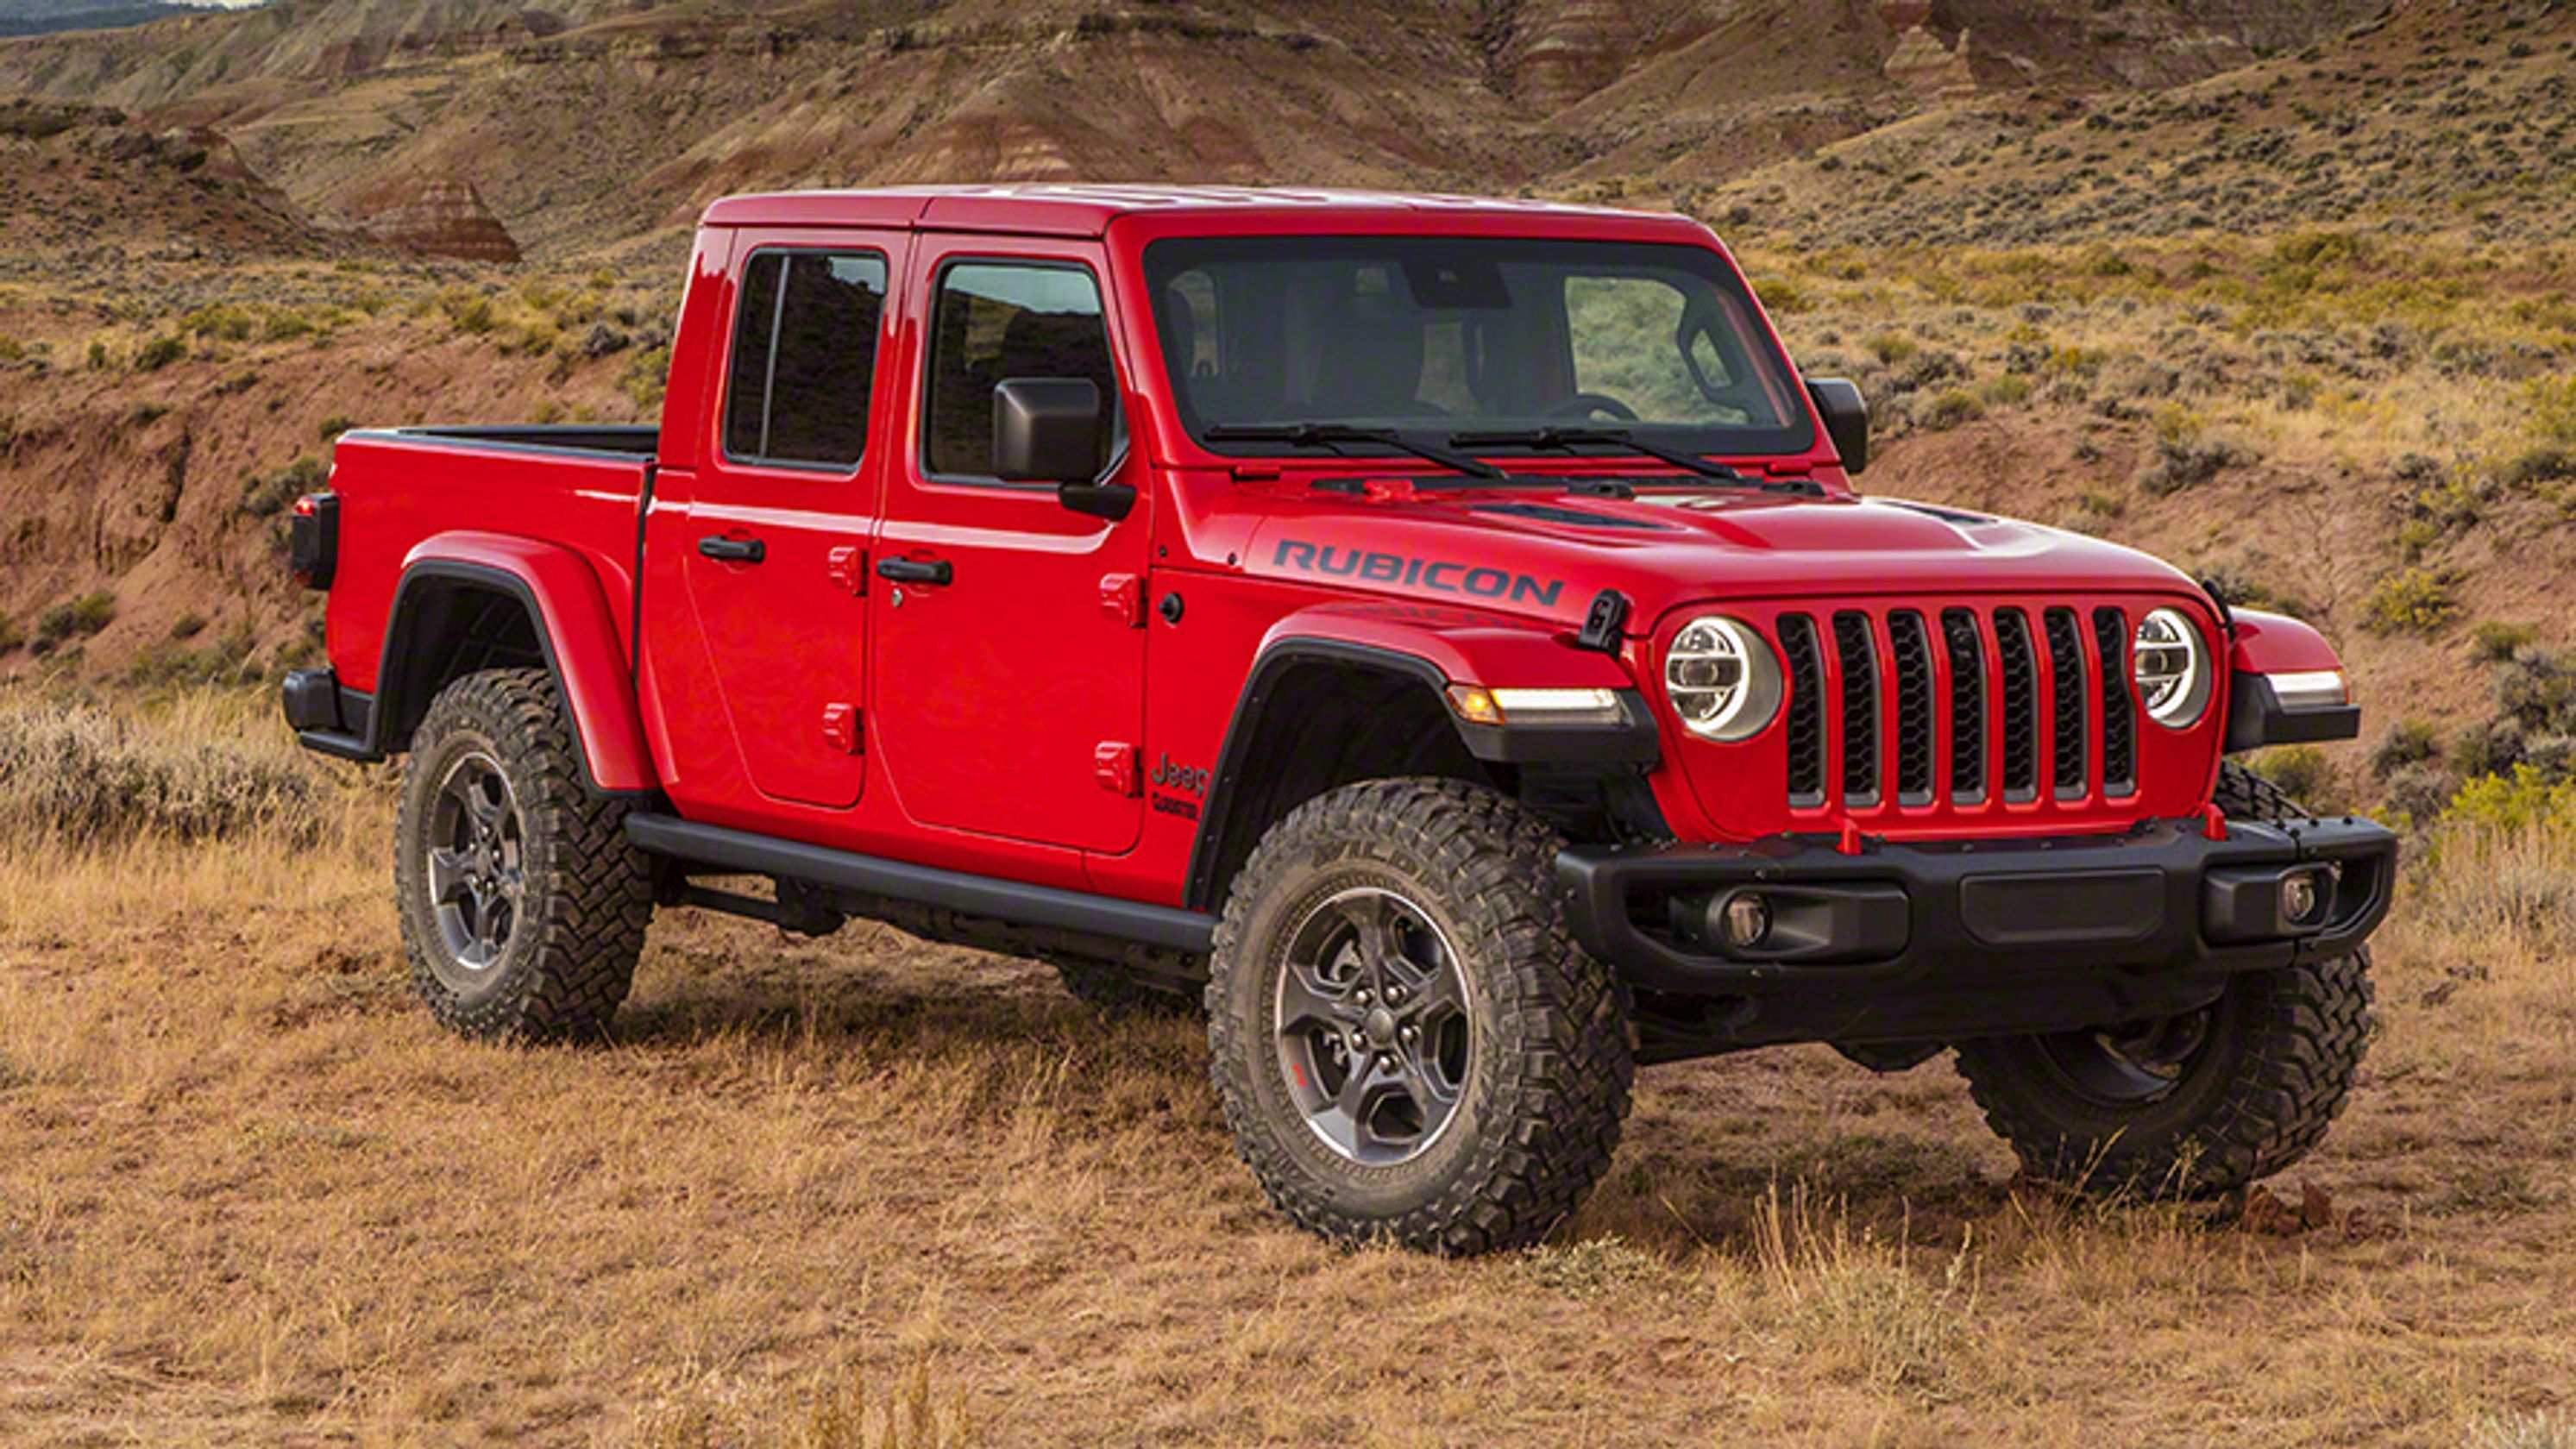 52 All New 2020 Jeep Pickup Truck Pricing by 2020 Jeep Pickup Truck